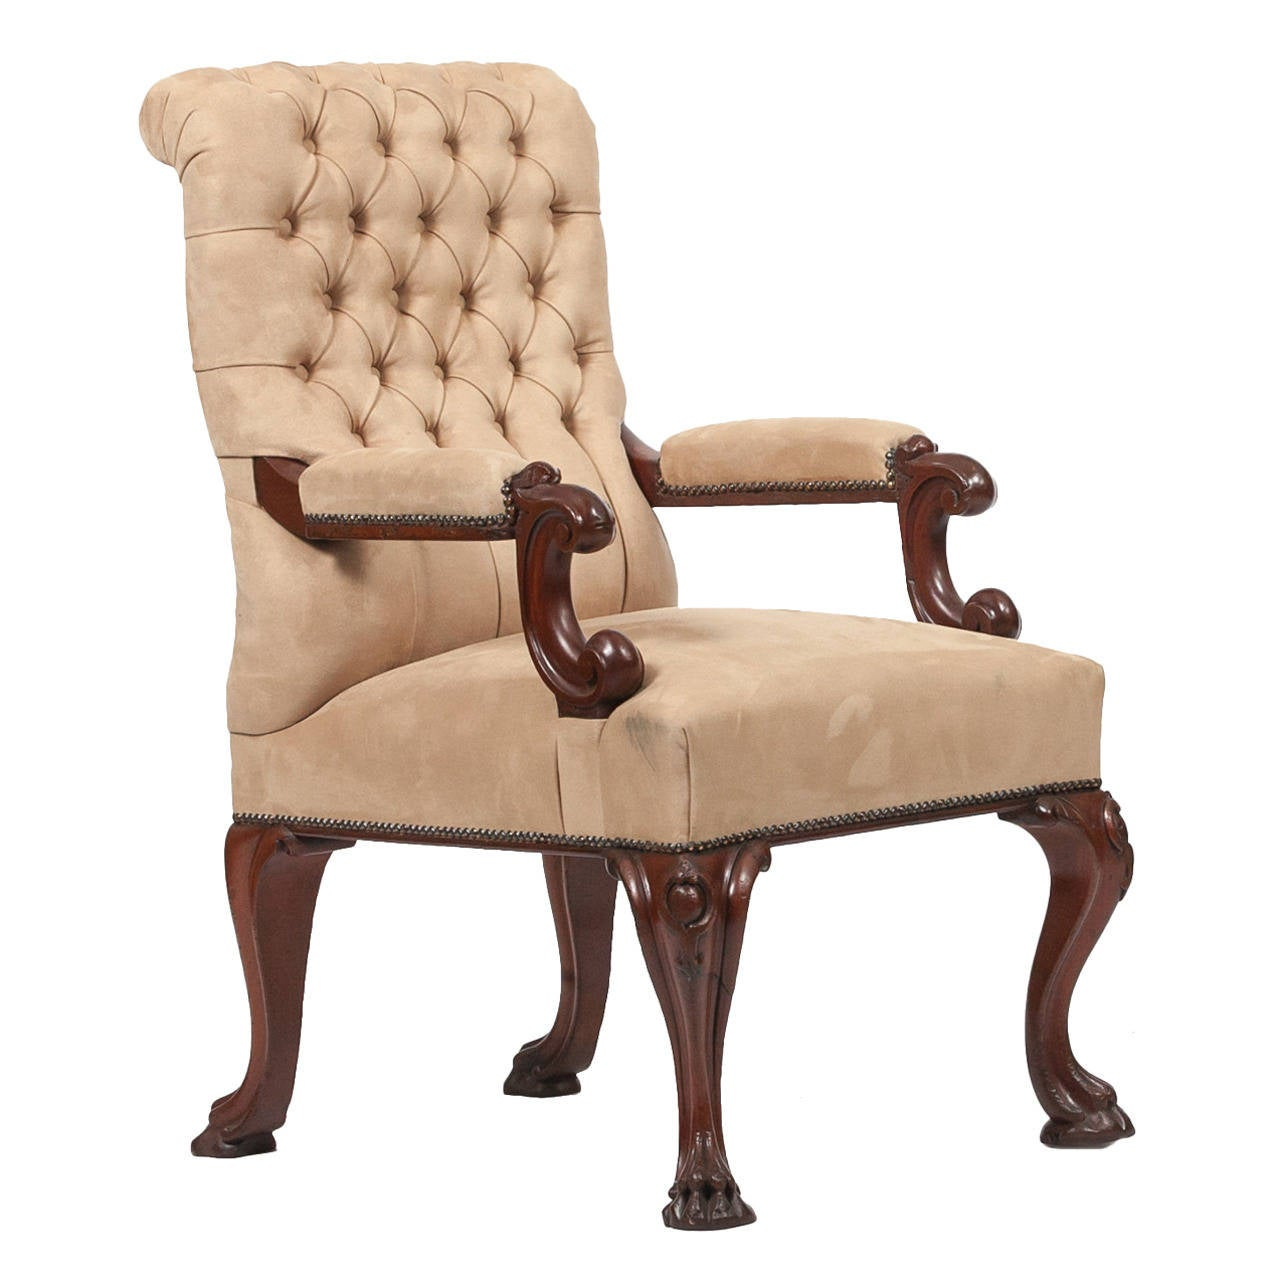 19th Century Suede Open Armchair For Sale at 1stdibs